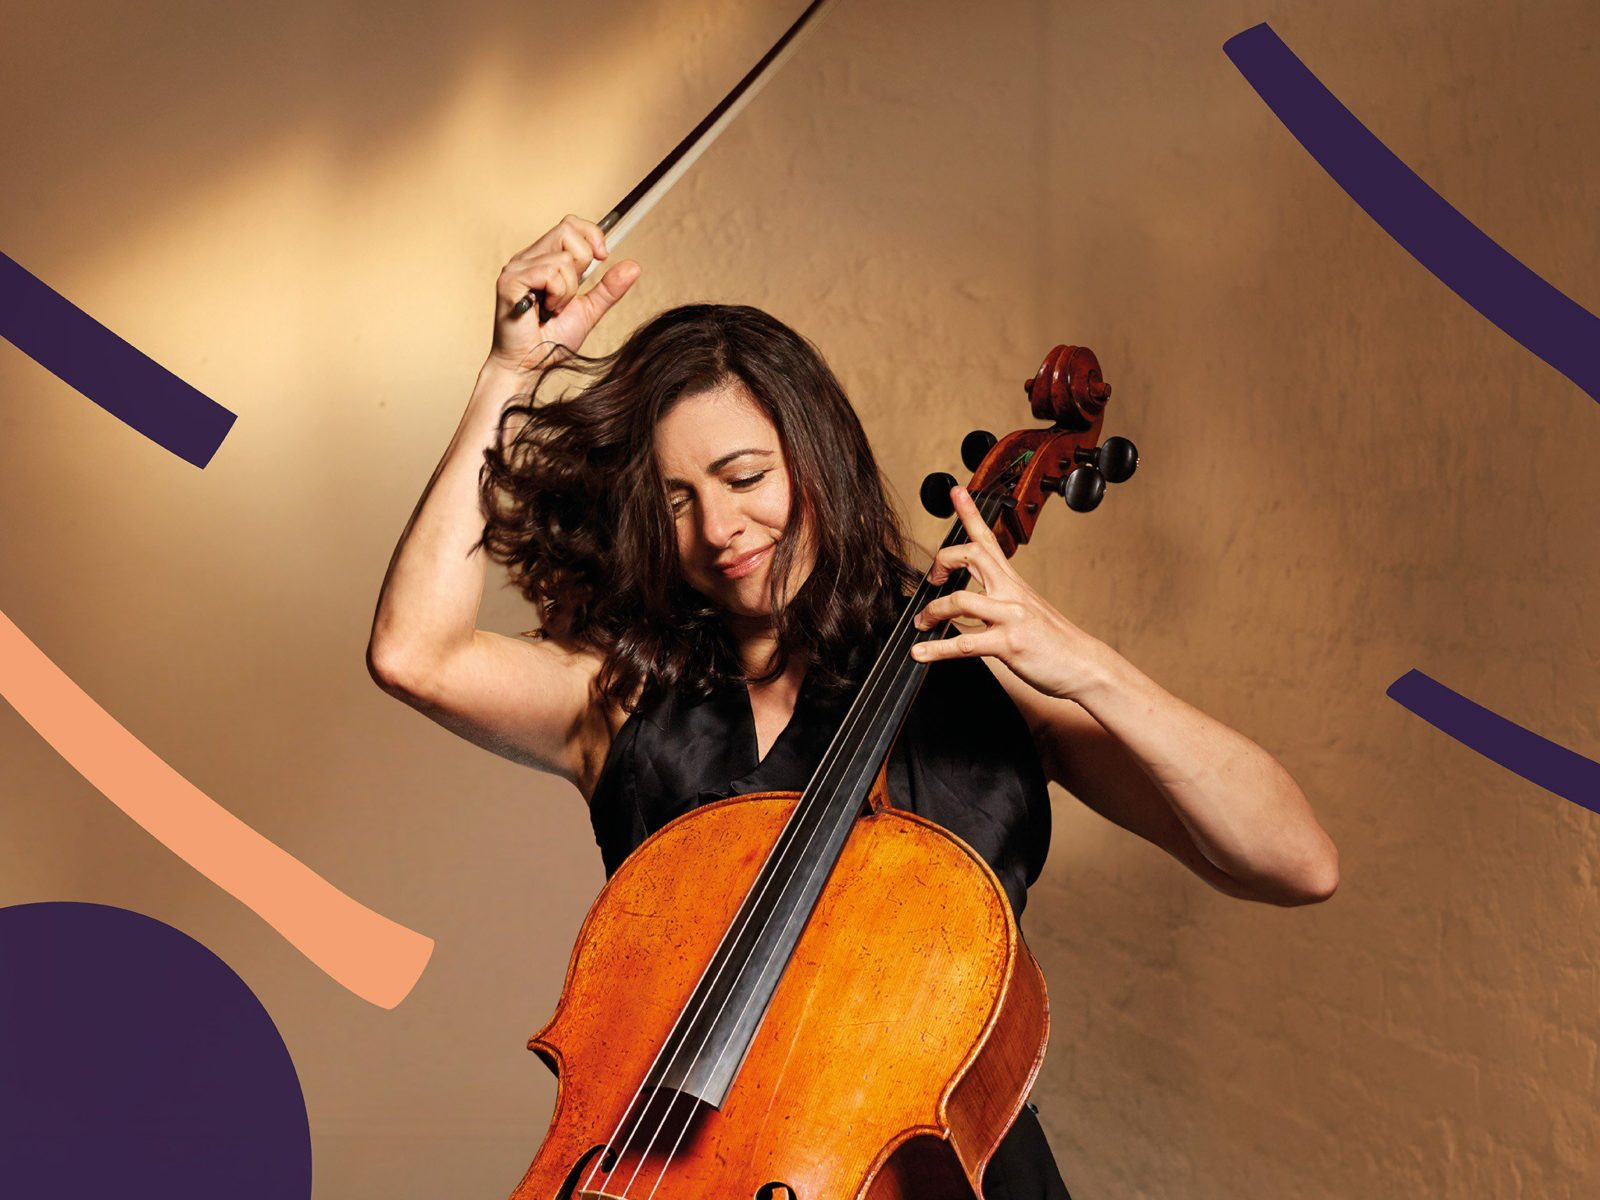 Cellist Natalie Clein speaks to the heart, playing with a unique combination of passion and delicacy